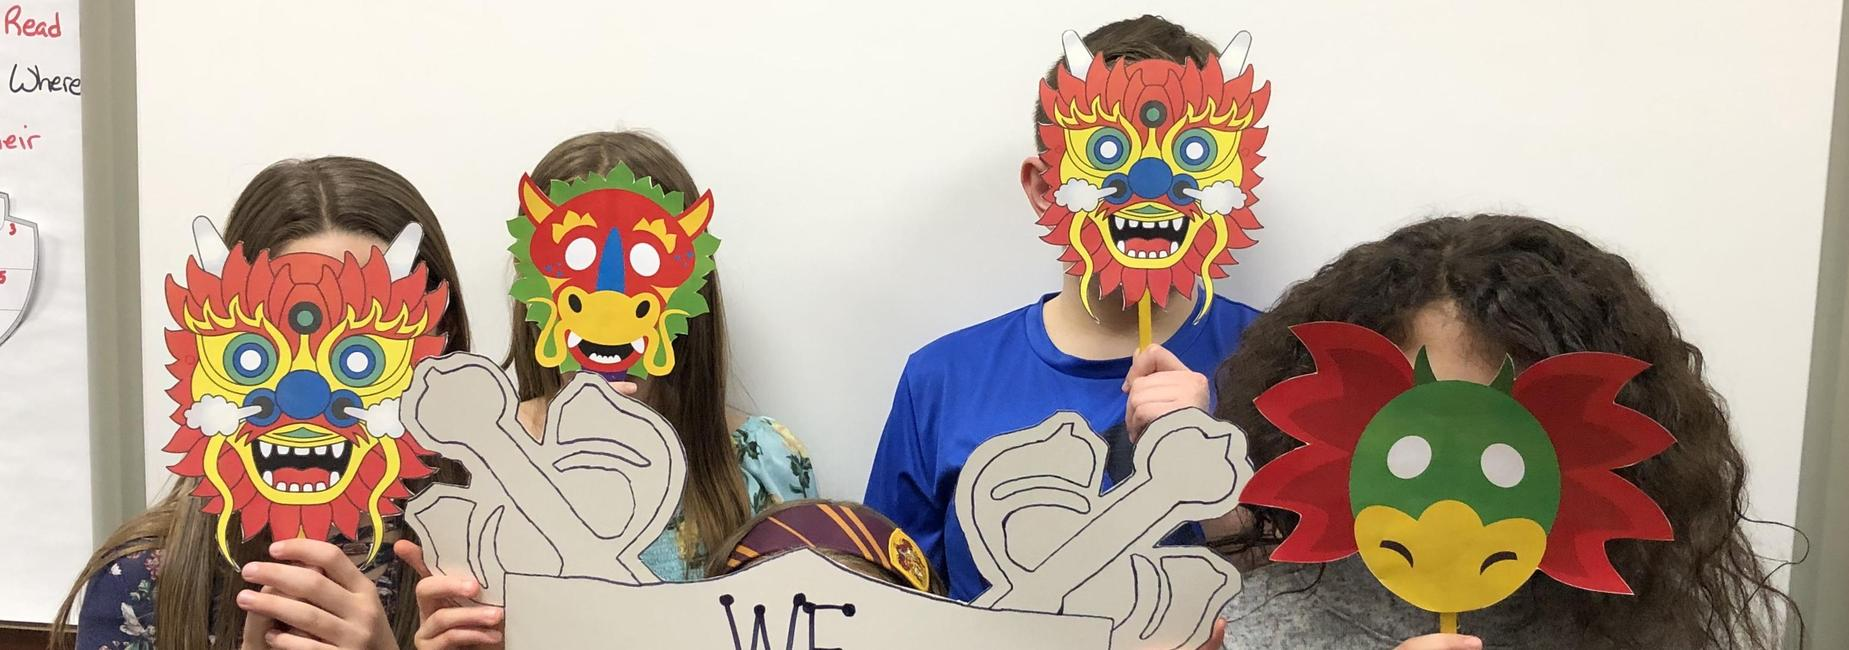 Students holding dragon masks in front of face